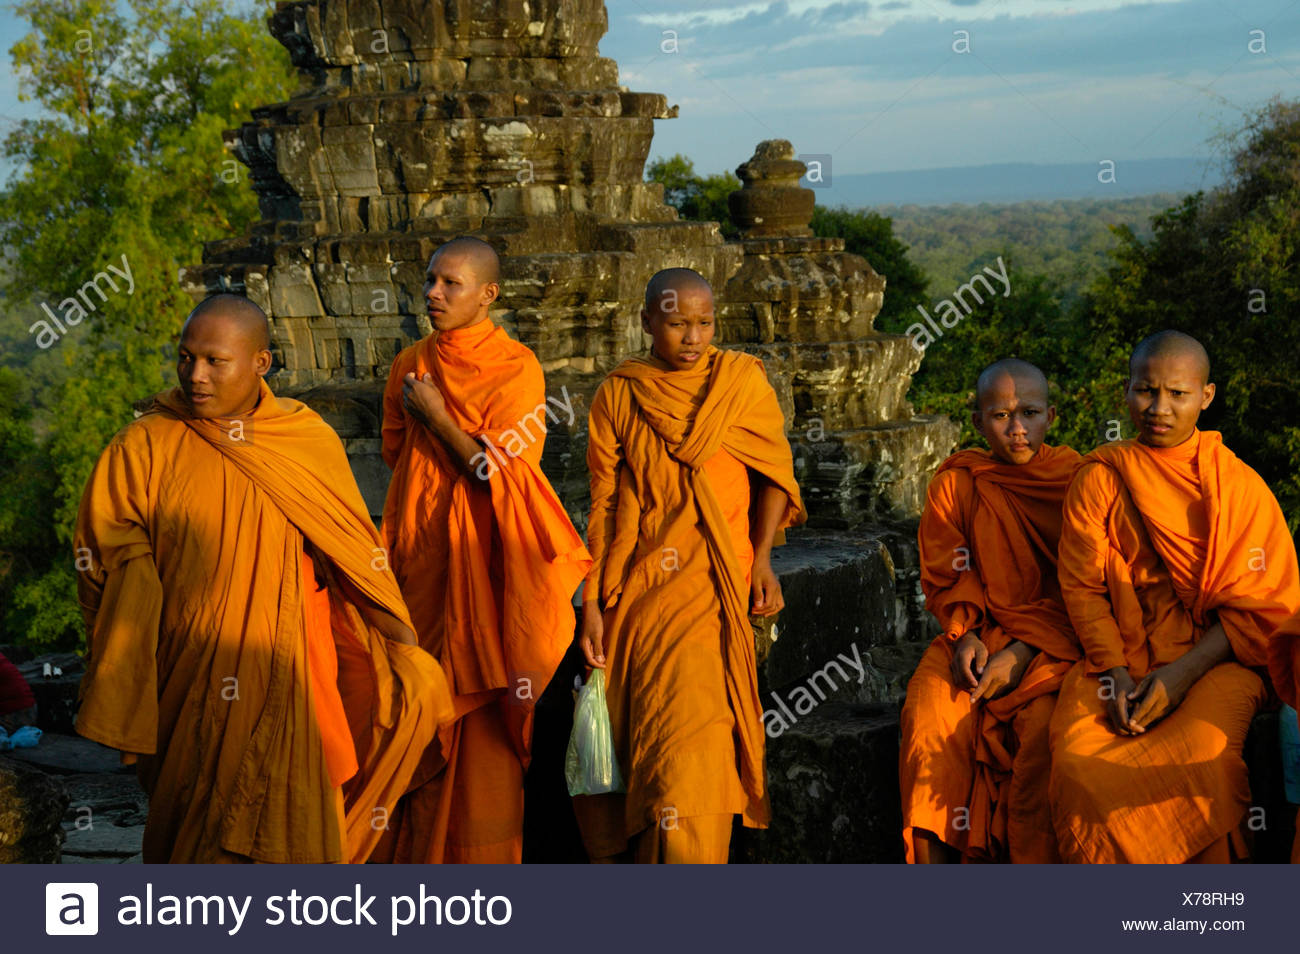 Five Buddhist monks in orange robes in Phnom Bakheng Temple, Angkor, Siem Reap, Cambodia, Southeast Asia Stock Photo